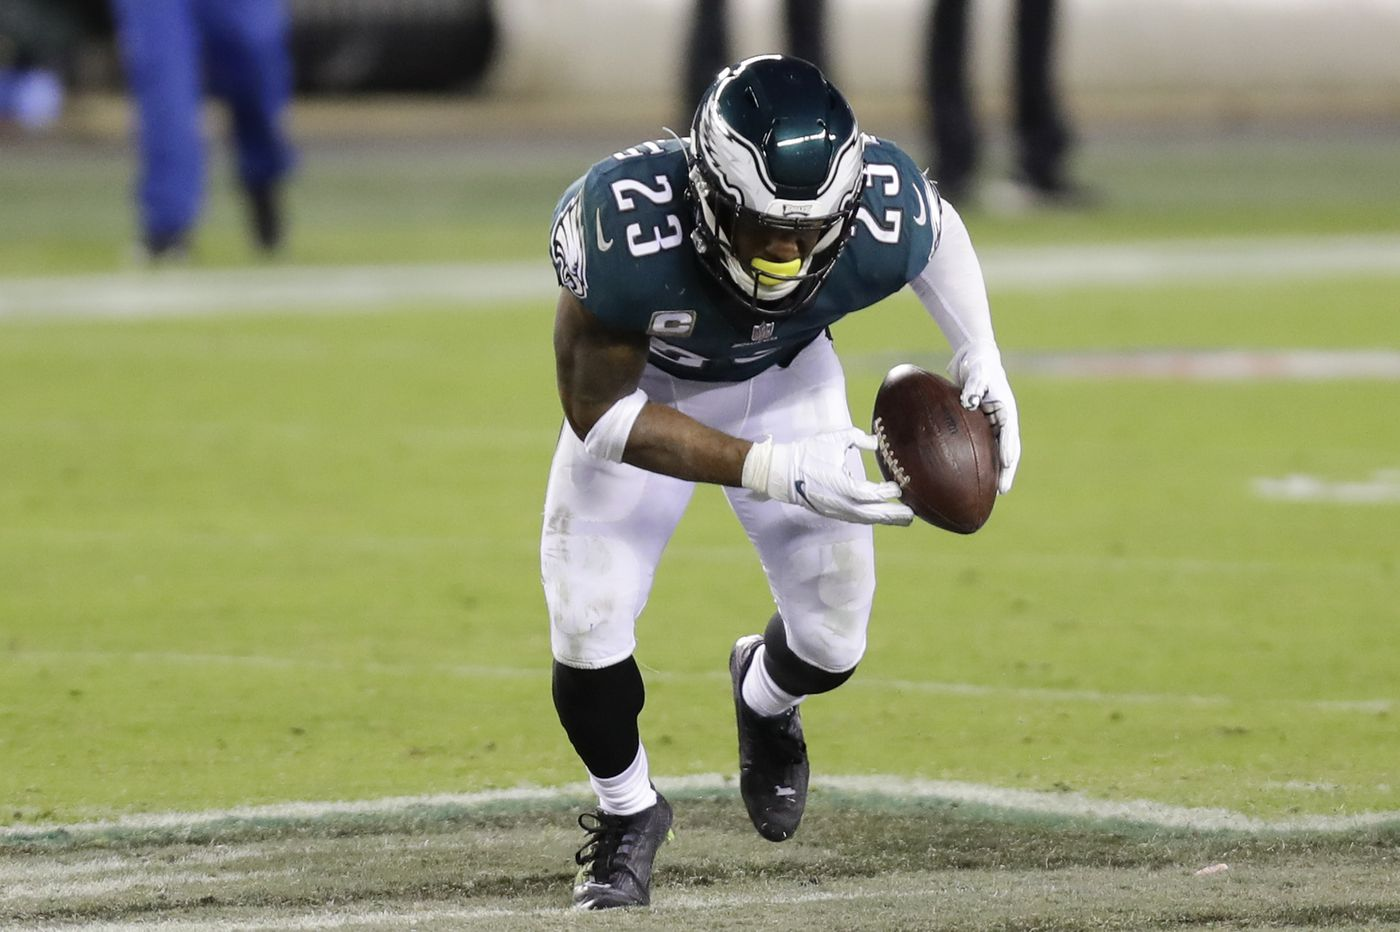 The Eagles' Rodney McLeod spent part of his bye week encouraging Philadelphians to vote in the election | Early Birds